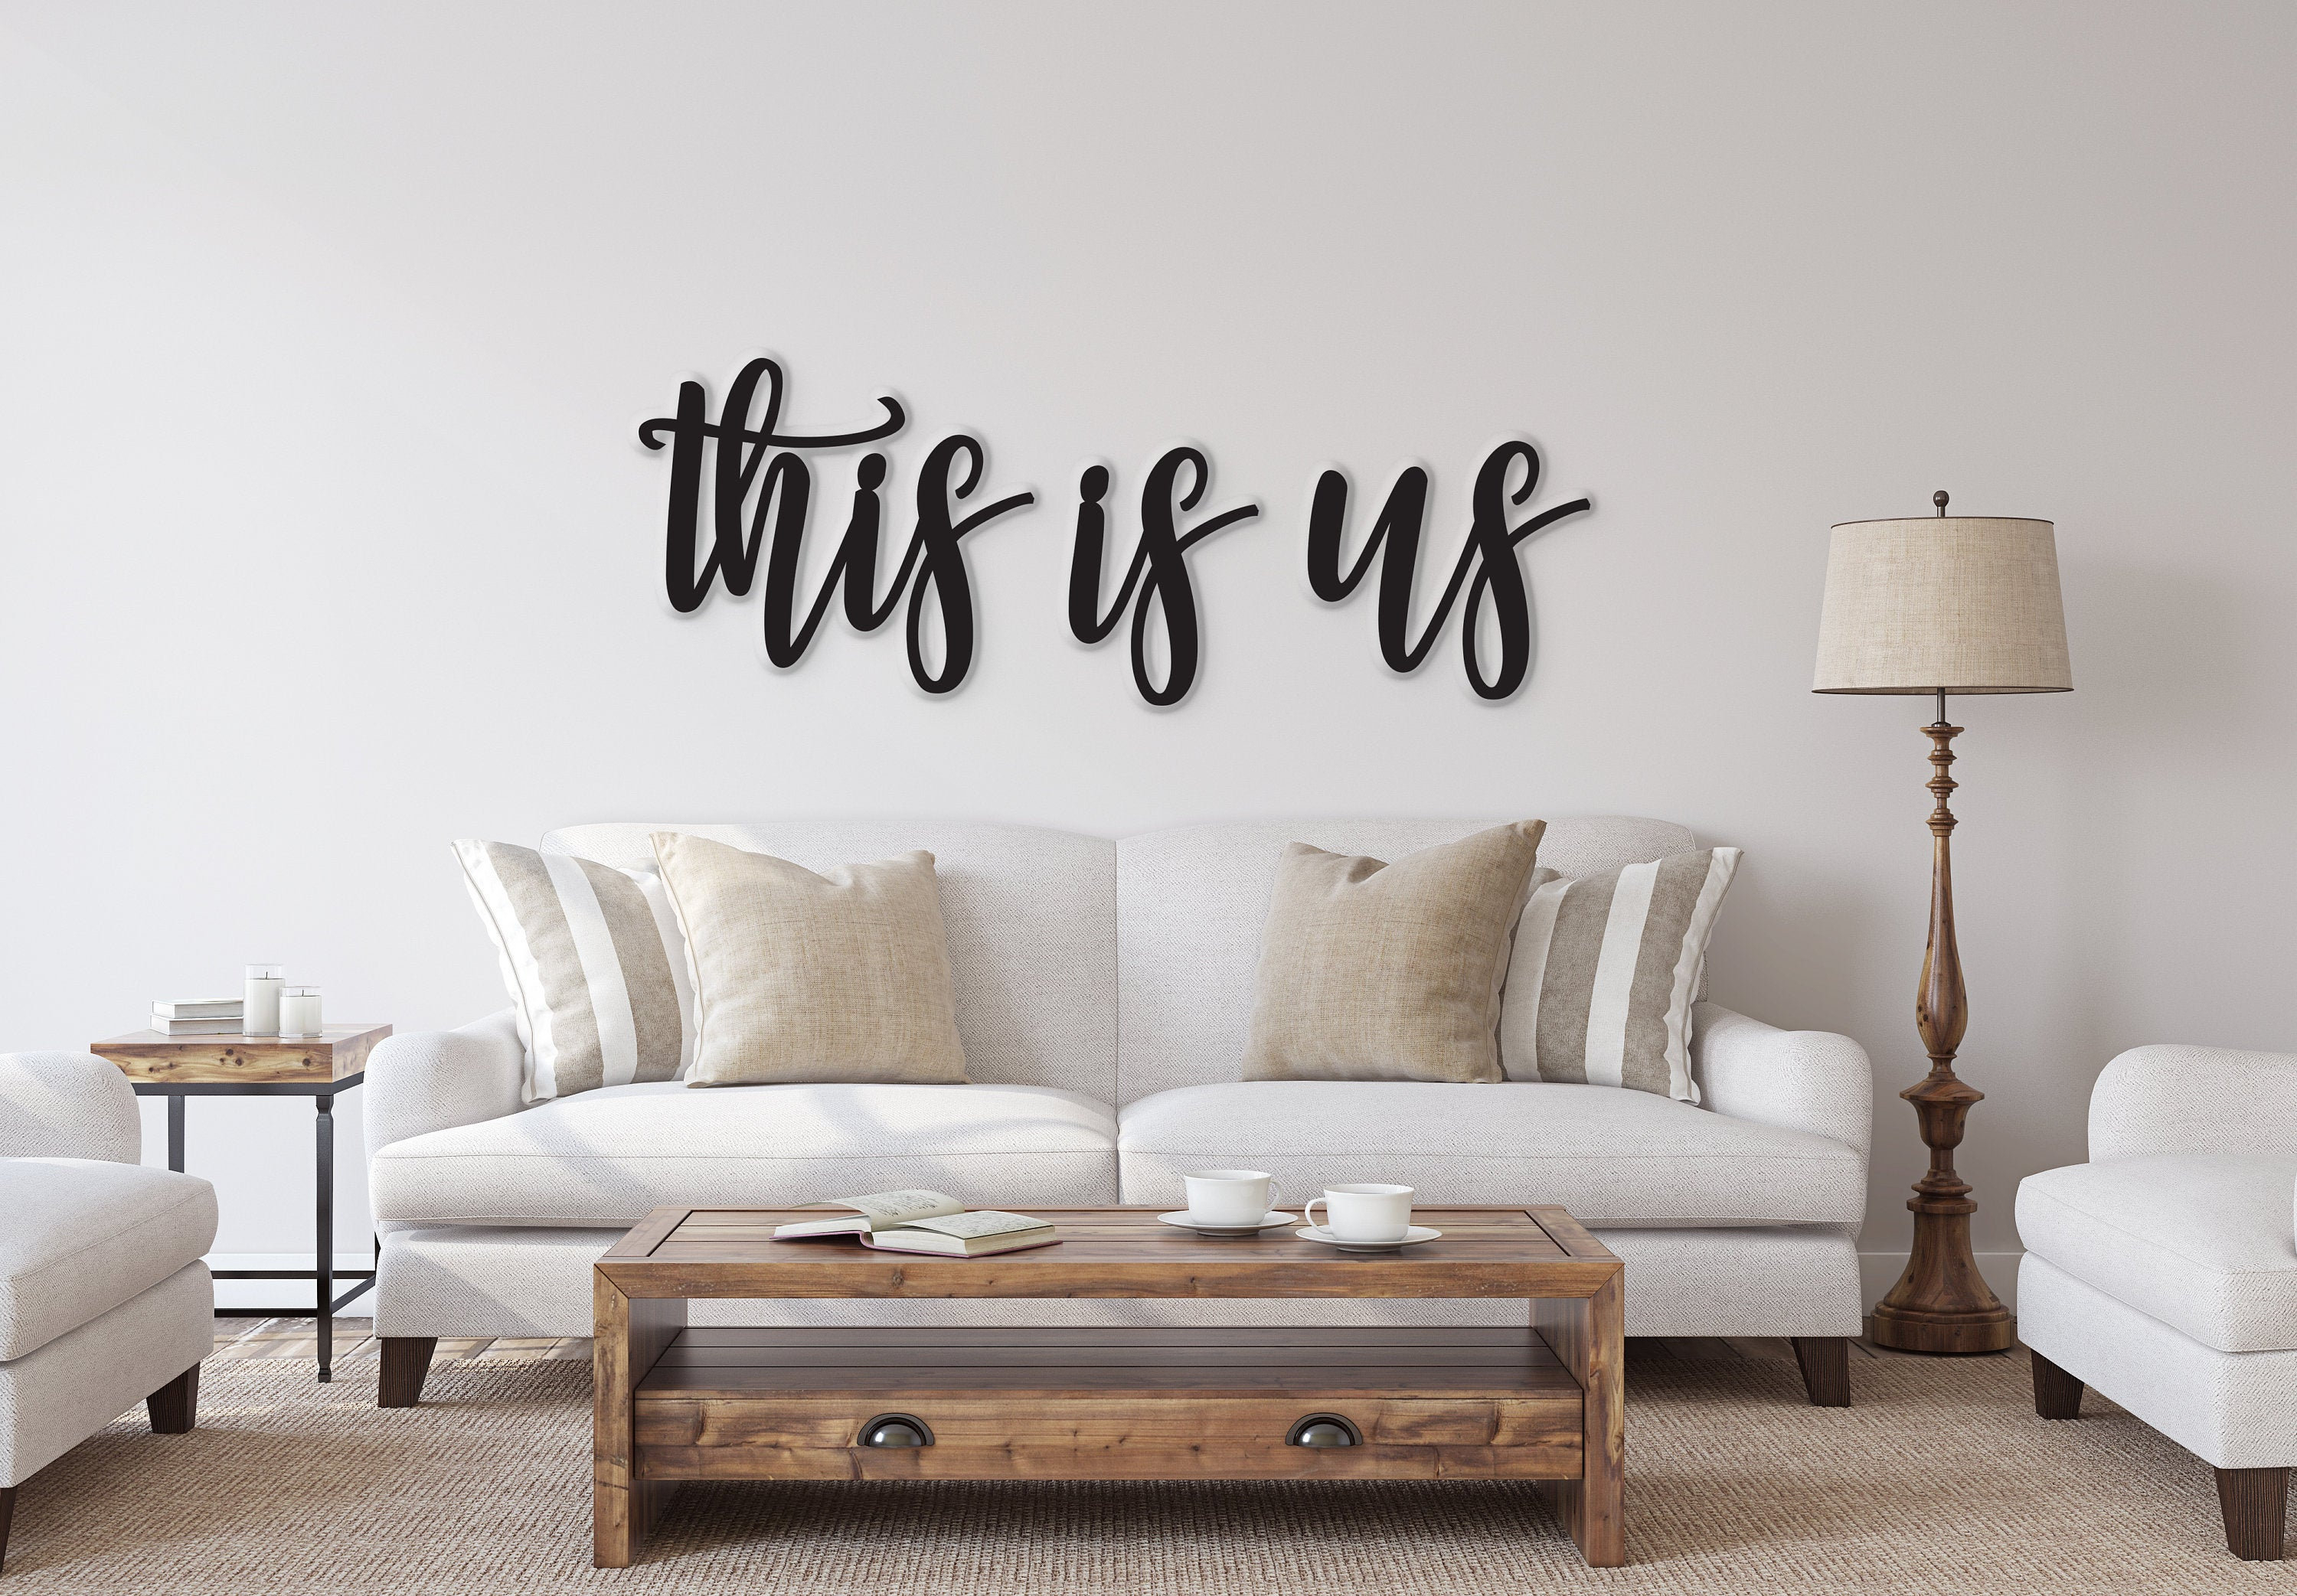 This Is Us Sign, This Is Us Wall Decor, This Us Wall Hanging, This Is Us Wood Sign, Family Room Decor, Thanksgiving Decor, Dining Room Decor Pertaining To This Is Us Wall Decor (View 7 of 30)